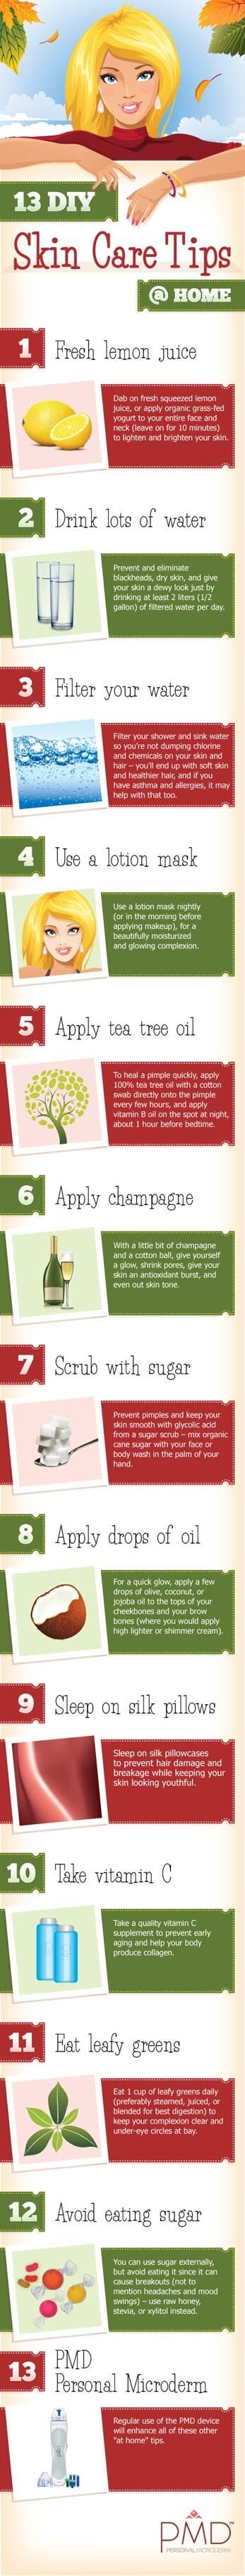 13 DIY Skin Care Tips @ Home!